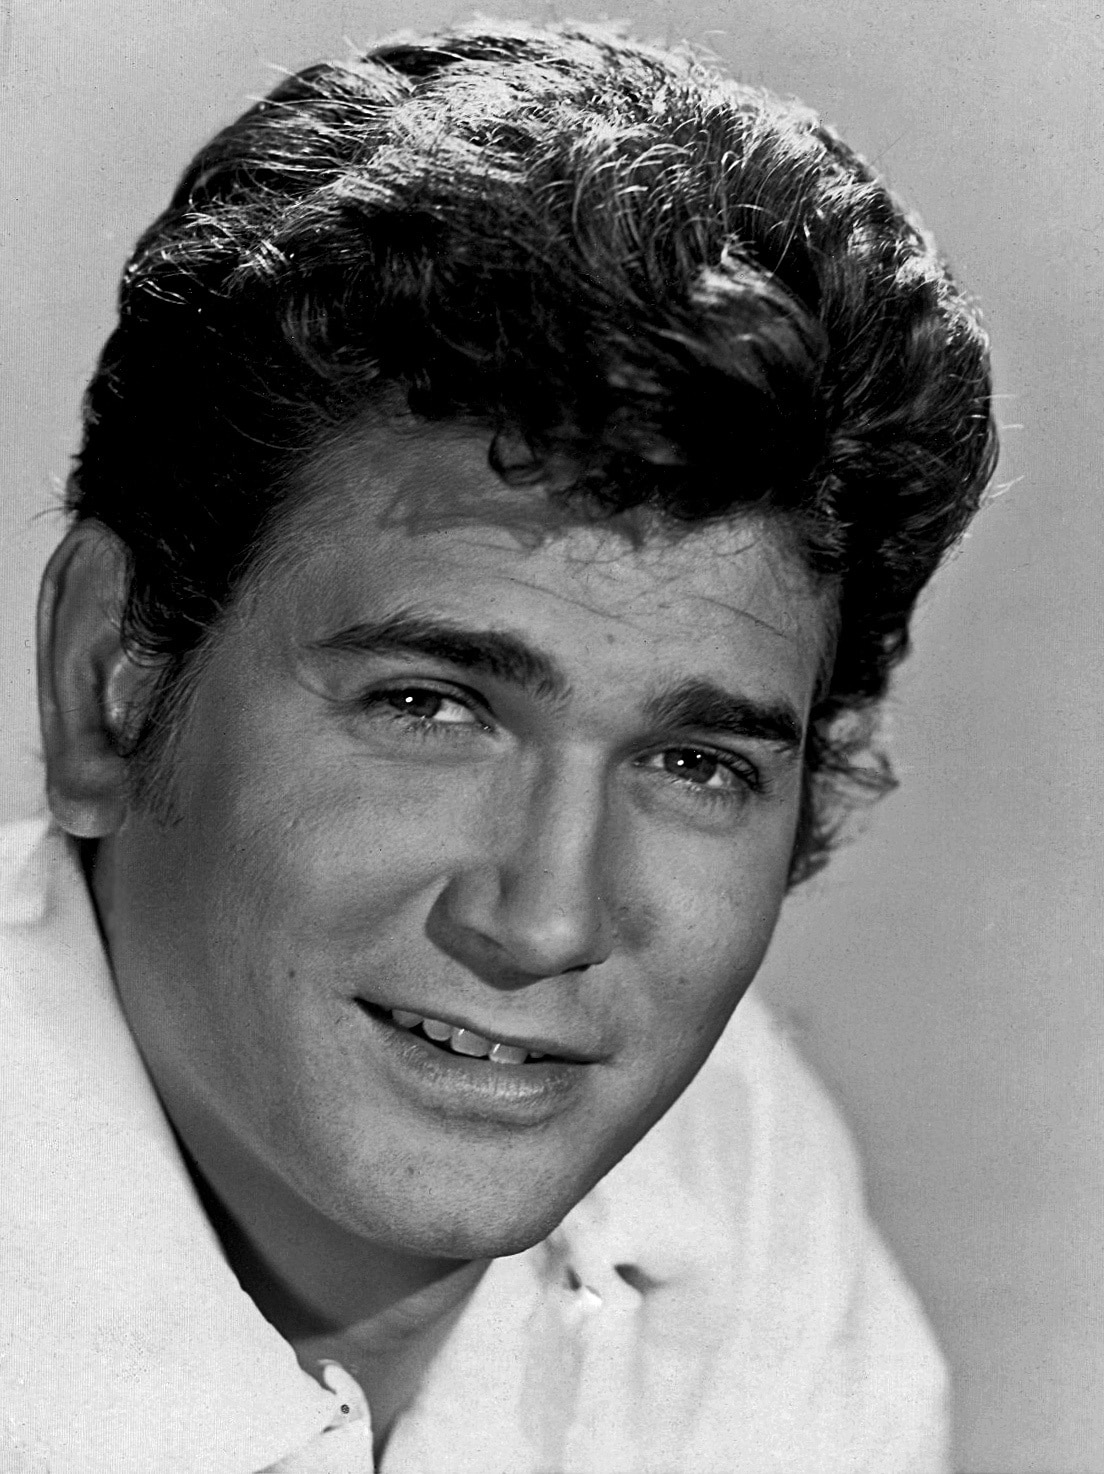 Michael Landon American Actor, Director, Producer, Writer